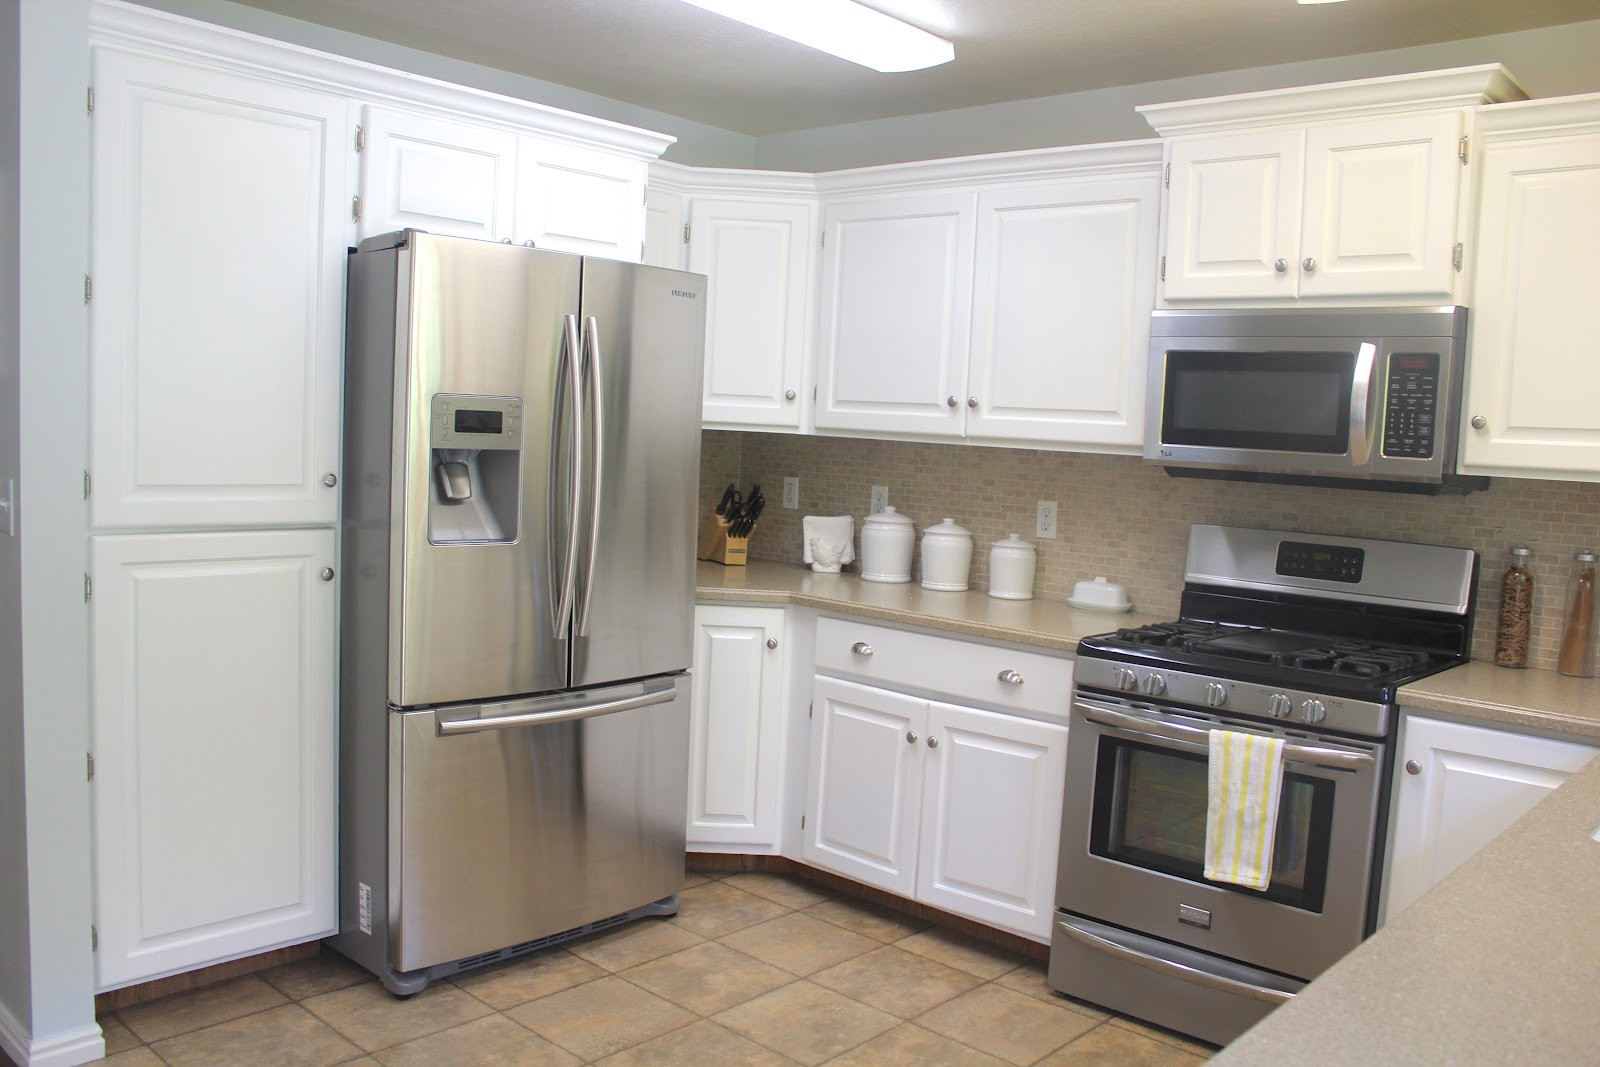 Kitchen Remodeling Budgets  everywhere beautiful Kitchen Remodel Big Results on a